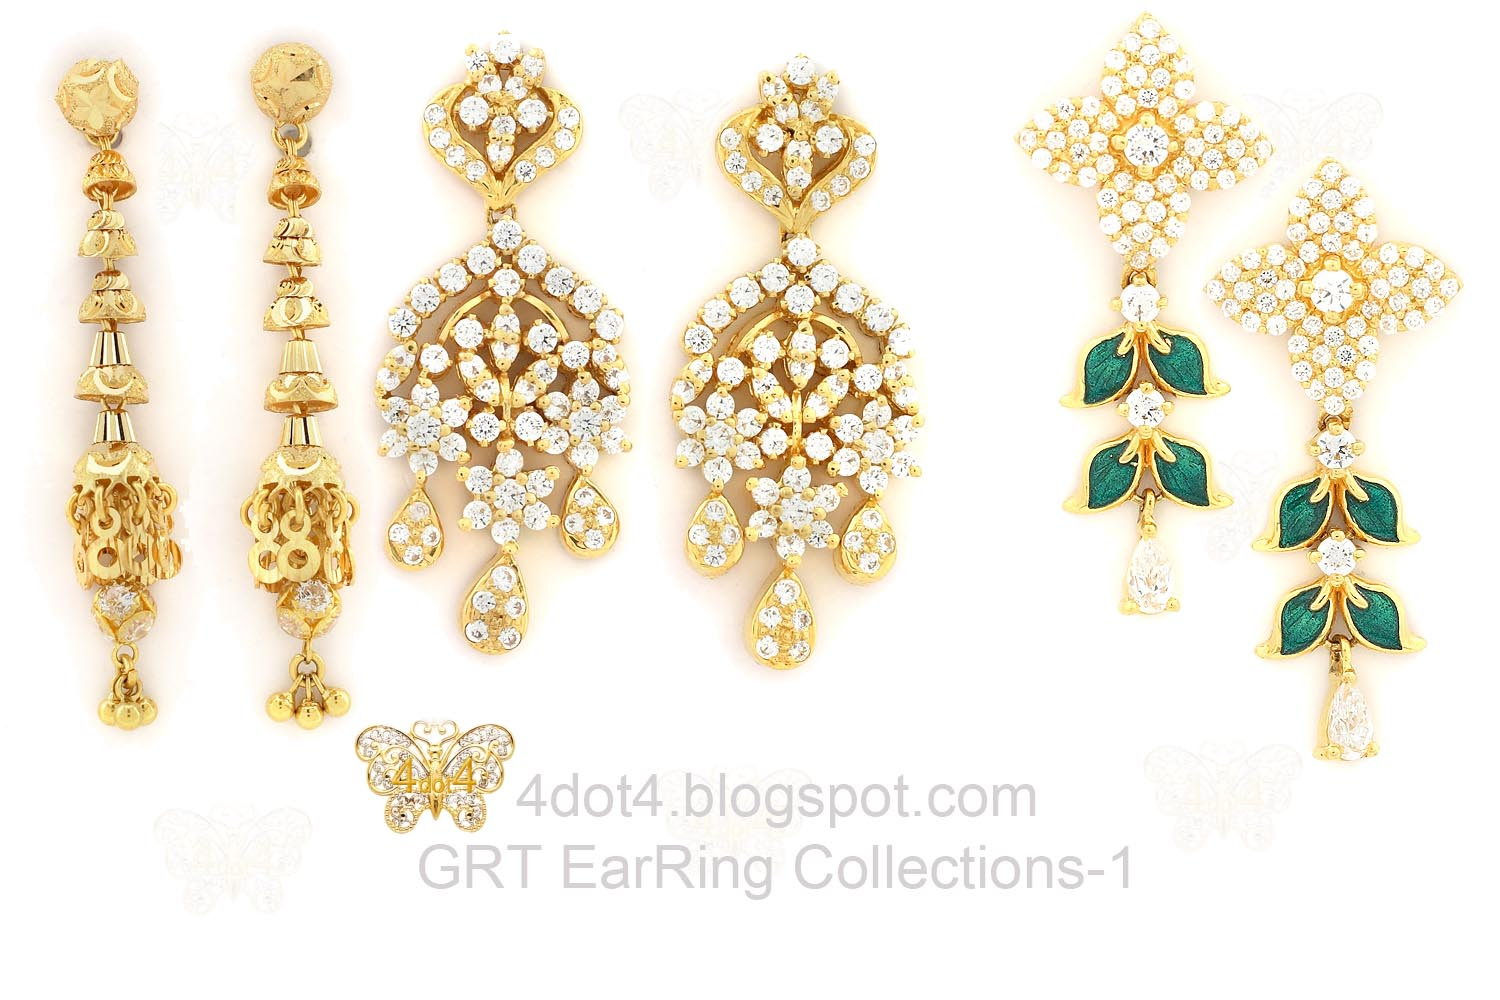 4.4 (Gold Special): Ear Rings (Latest 30 Designs)